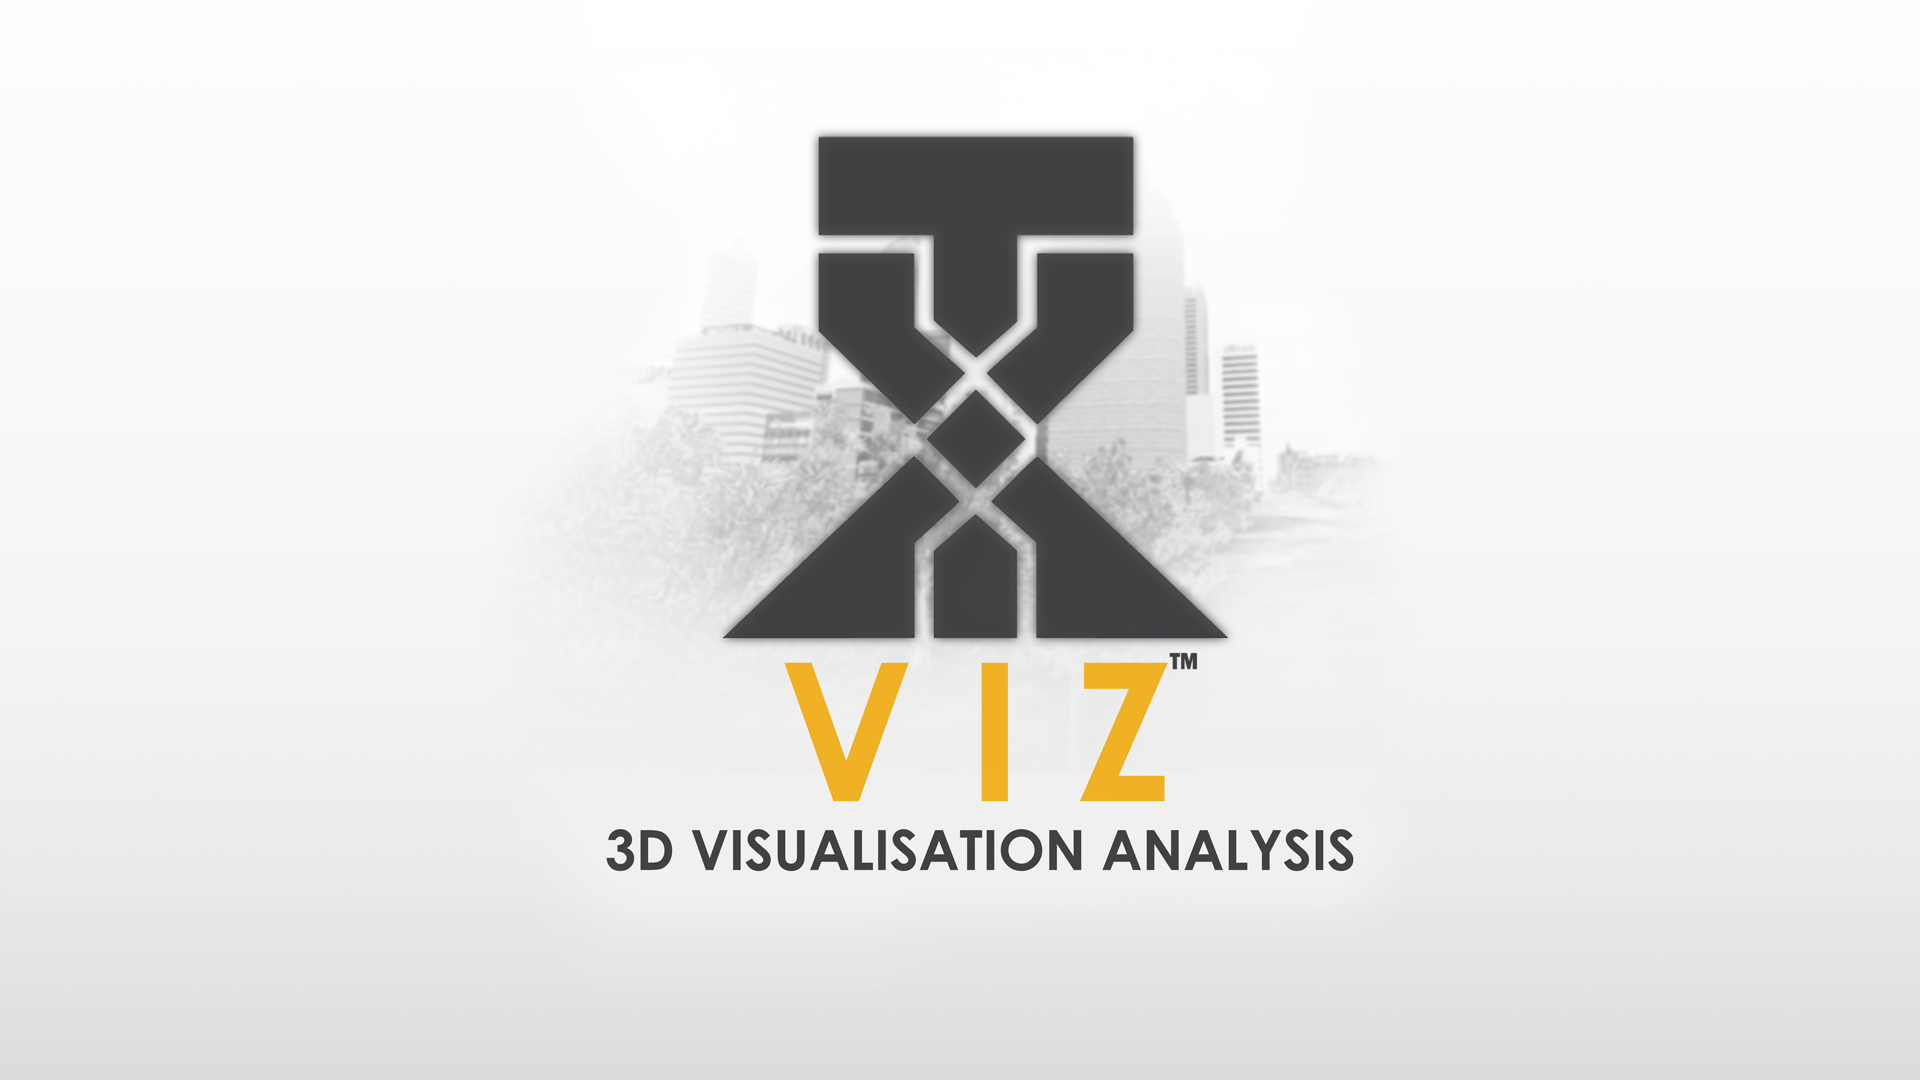 XTviz 3D Visualisation Analysis